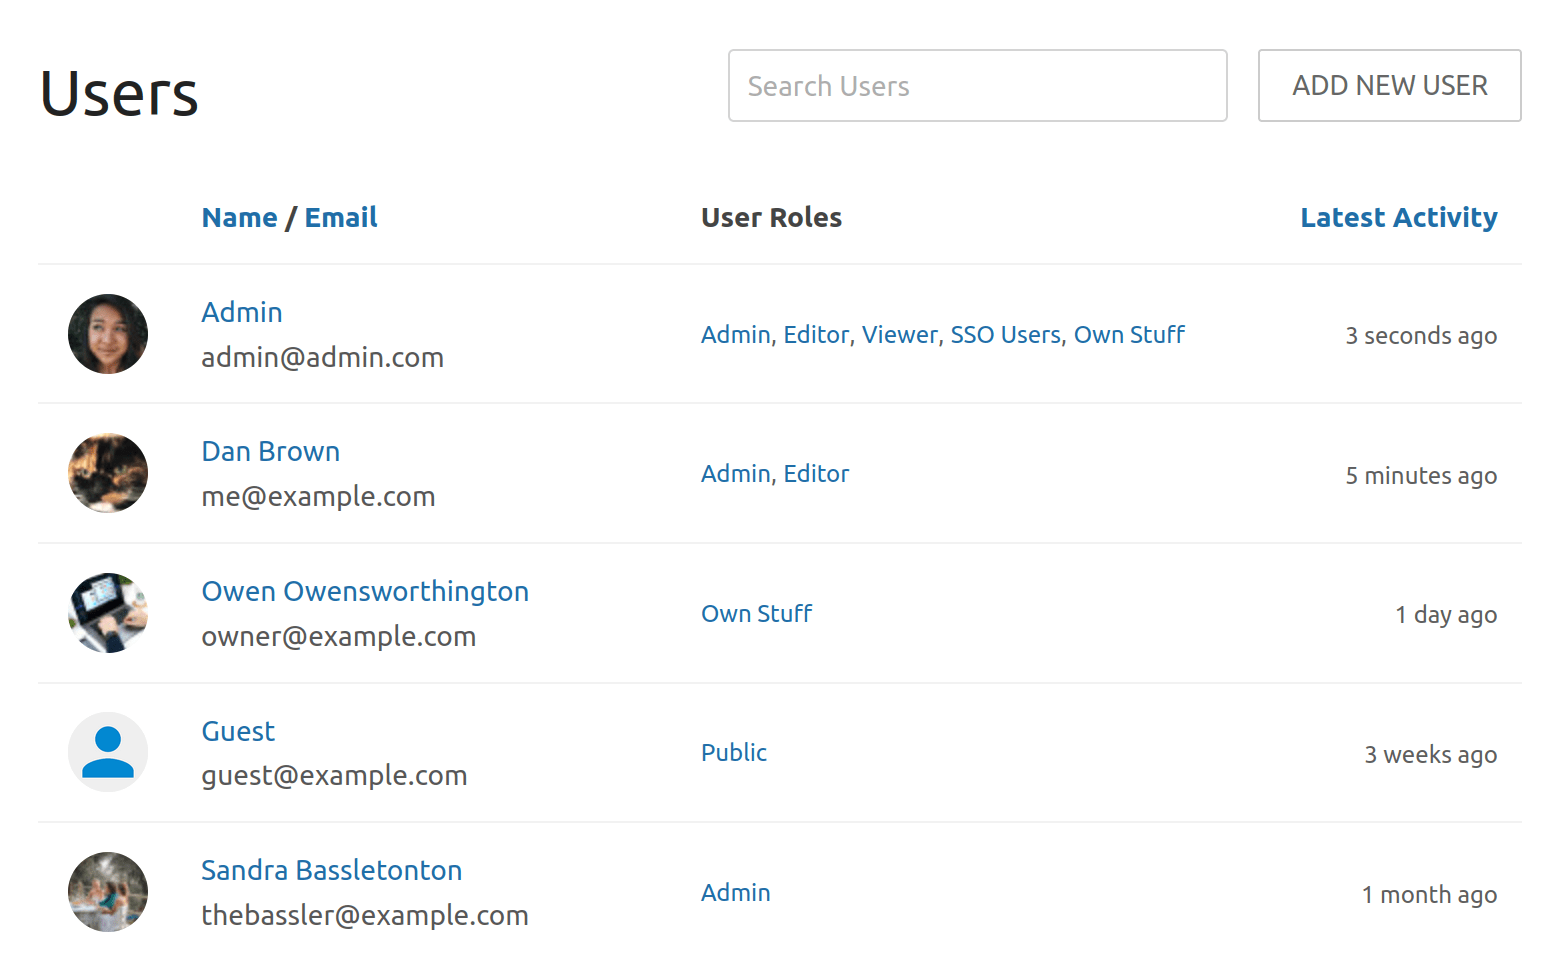 User List with Latest Activity